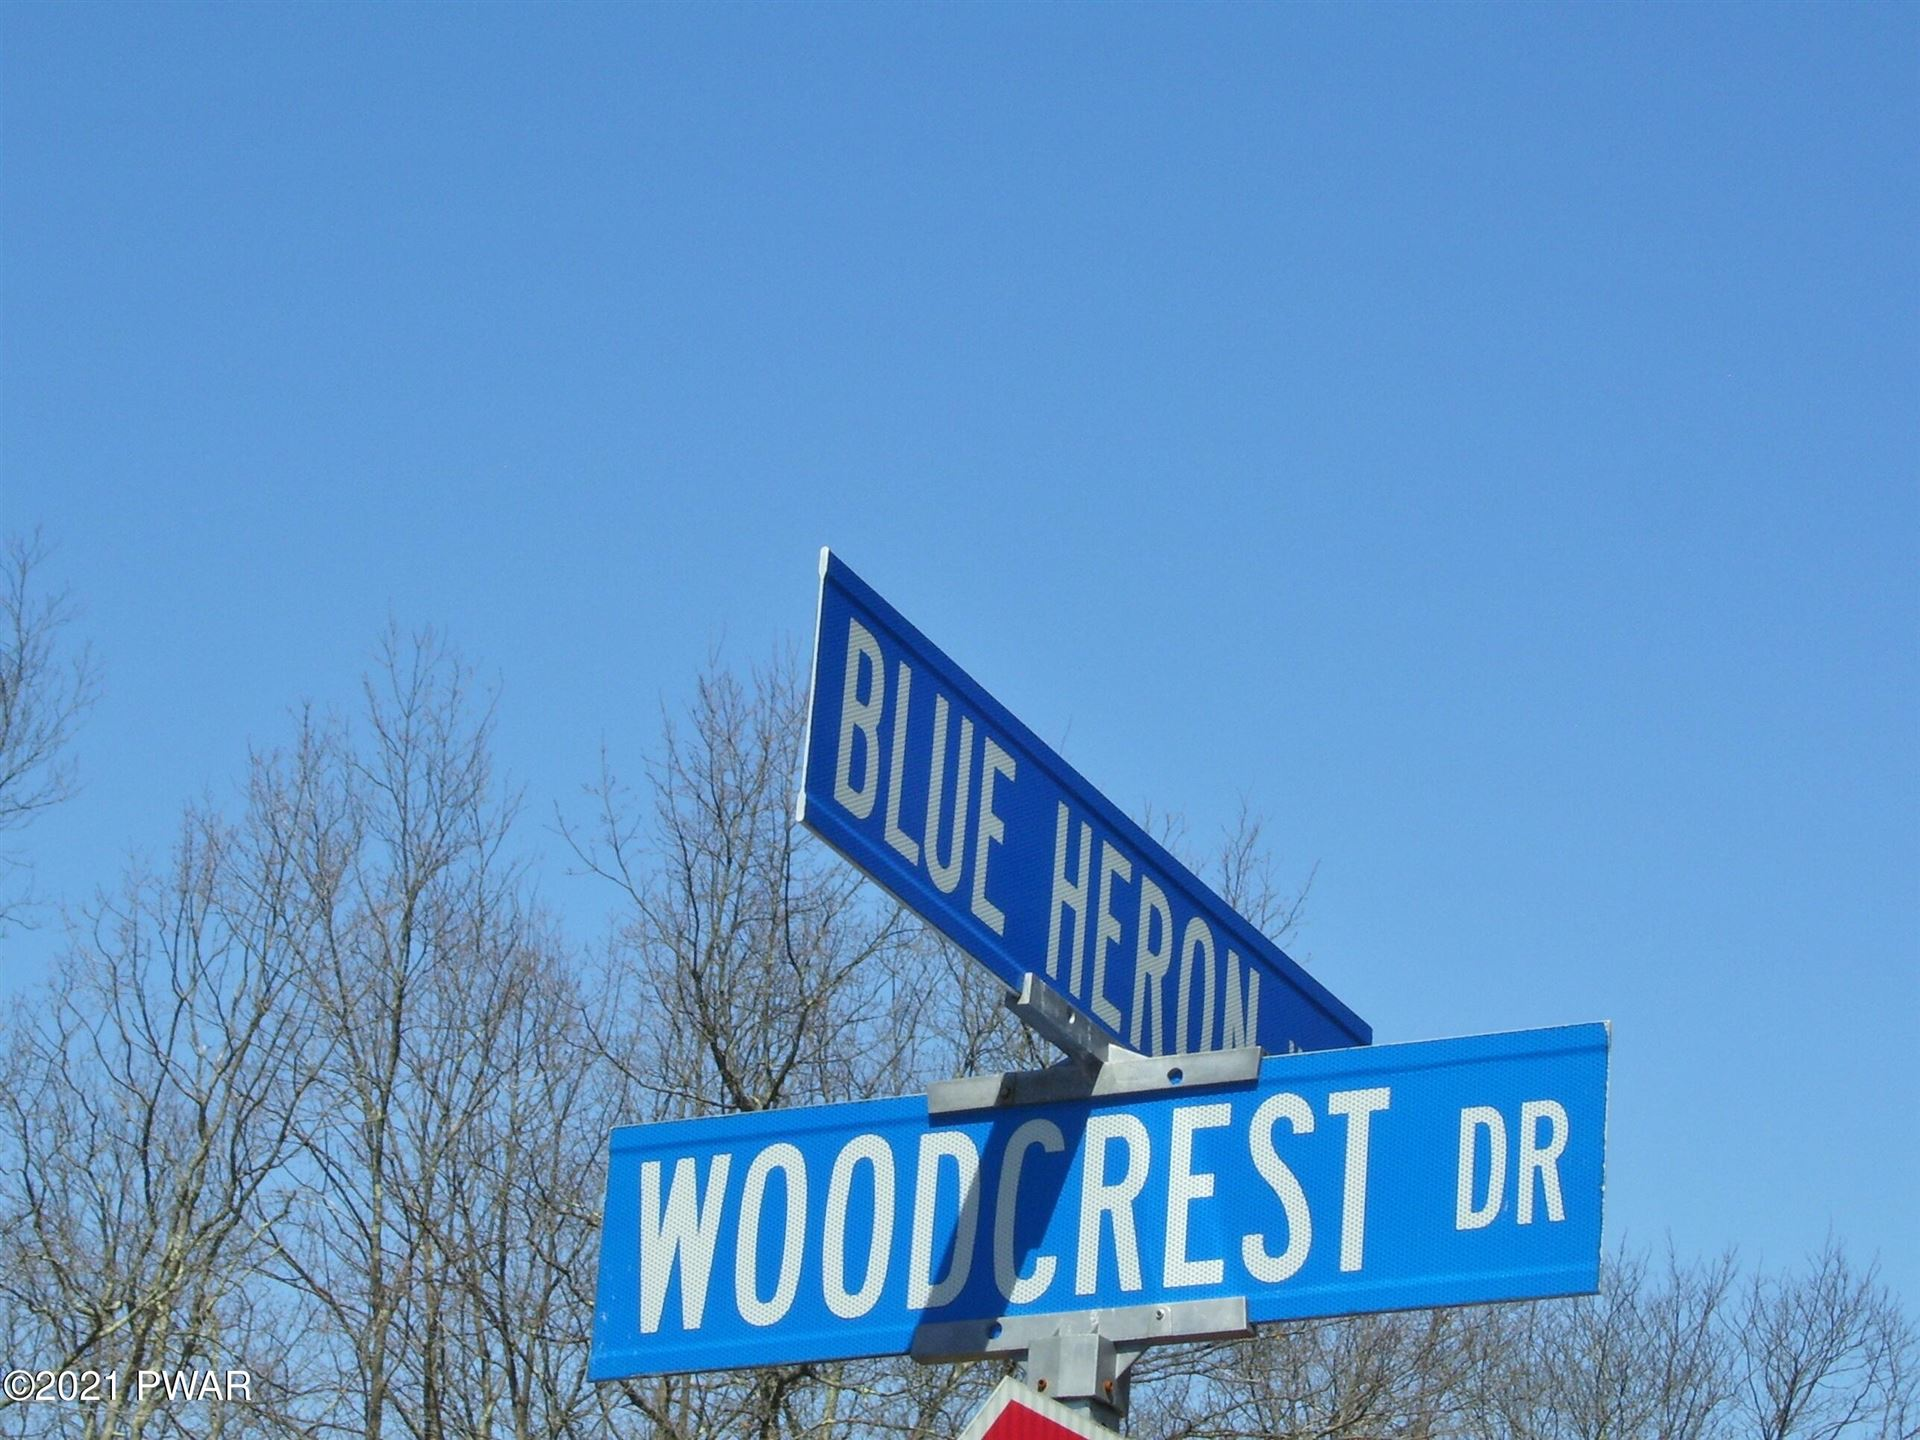 Photo of Lot 25 Woodcrest Dr, Hawley, PA 18428 (MLS # 20-4883)